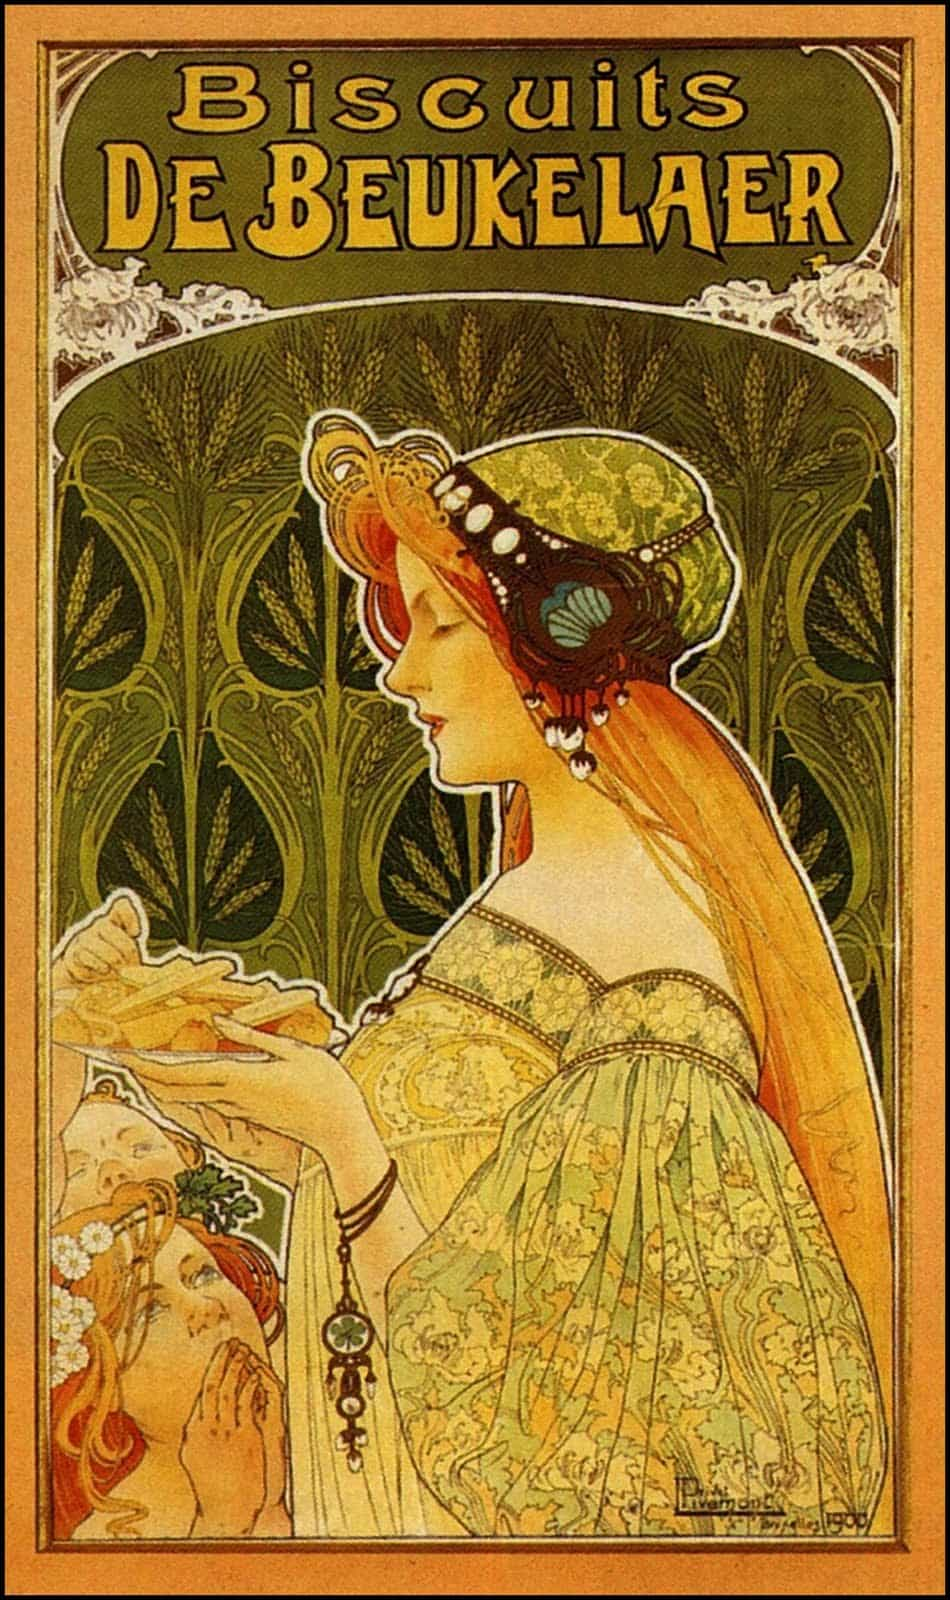 Book Cover Art Nouveau ~ Biscuits de beukelaer by privat livemont poster